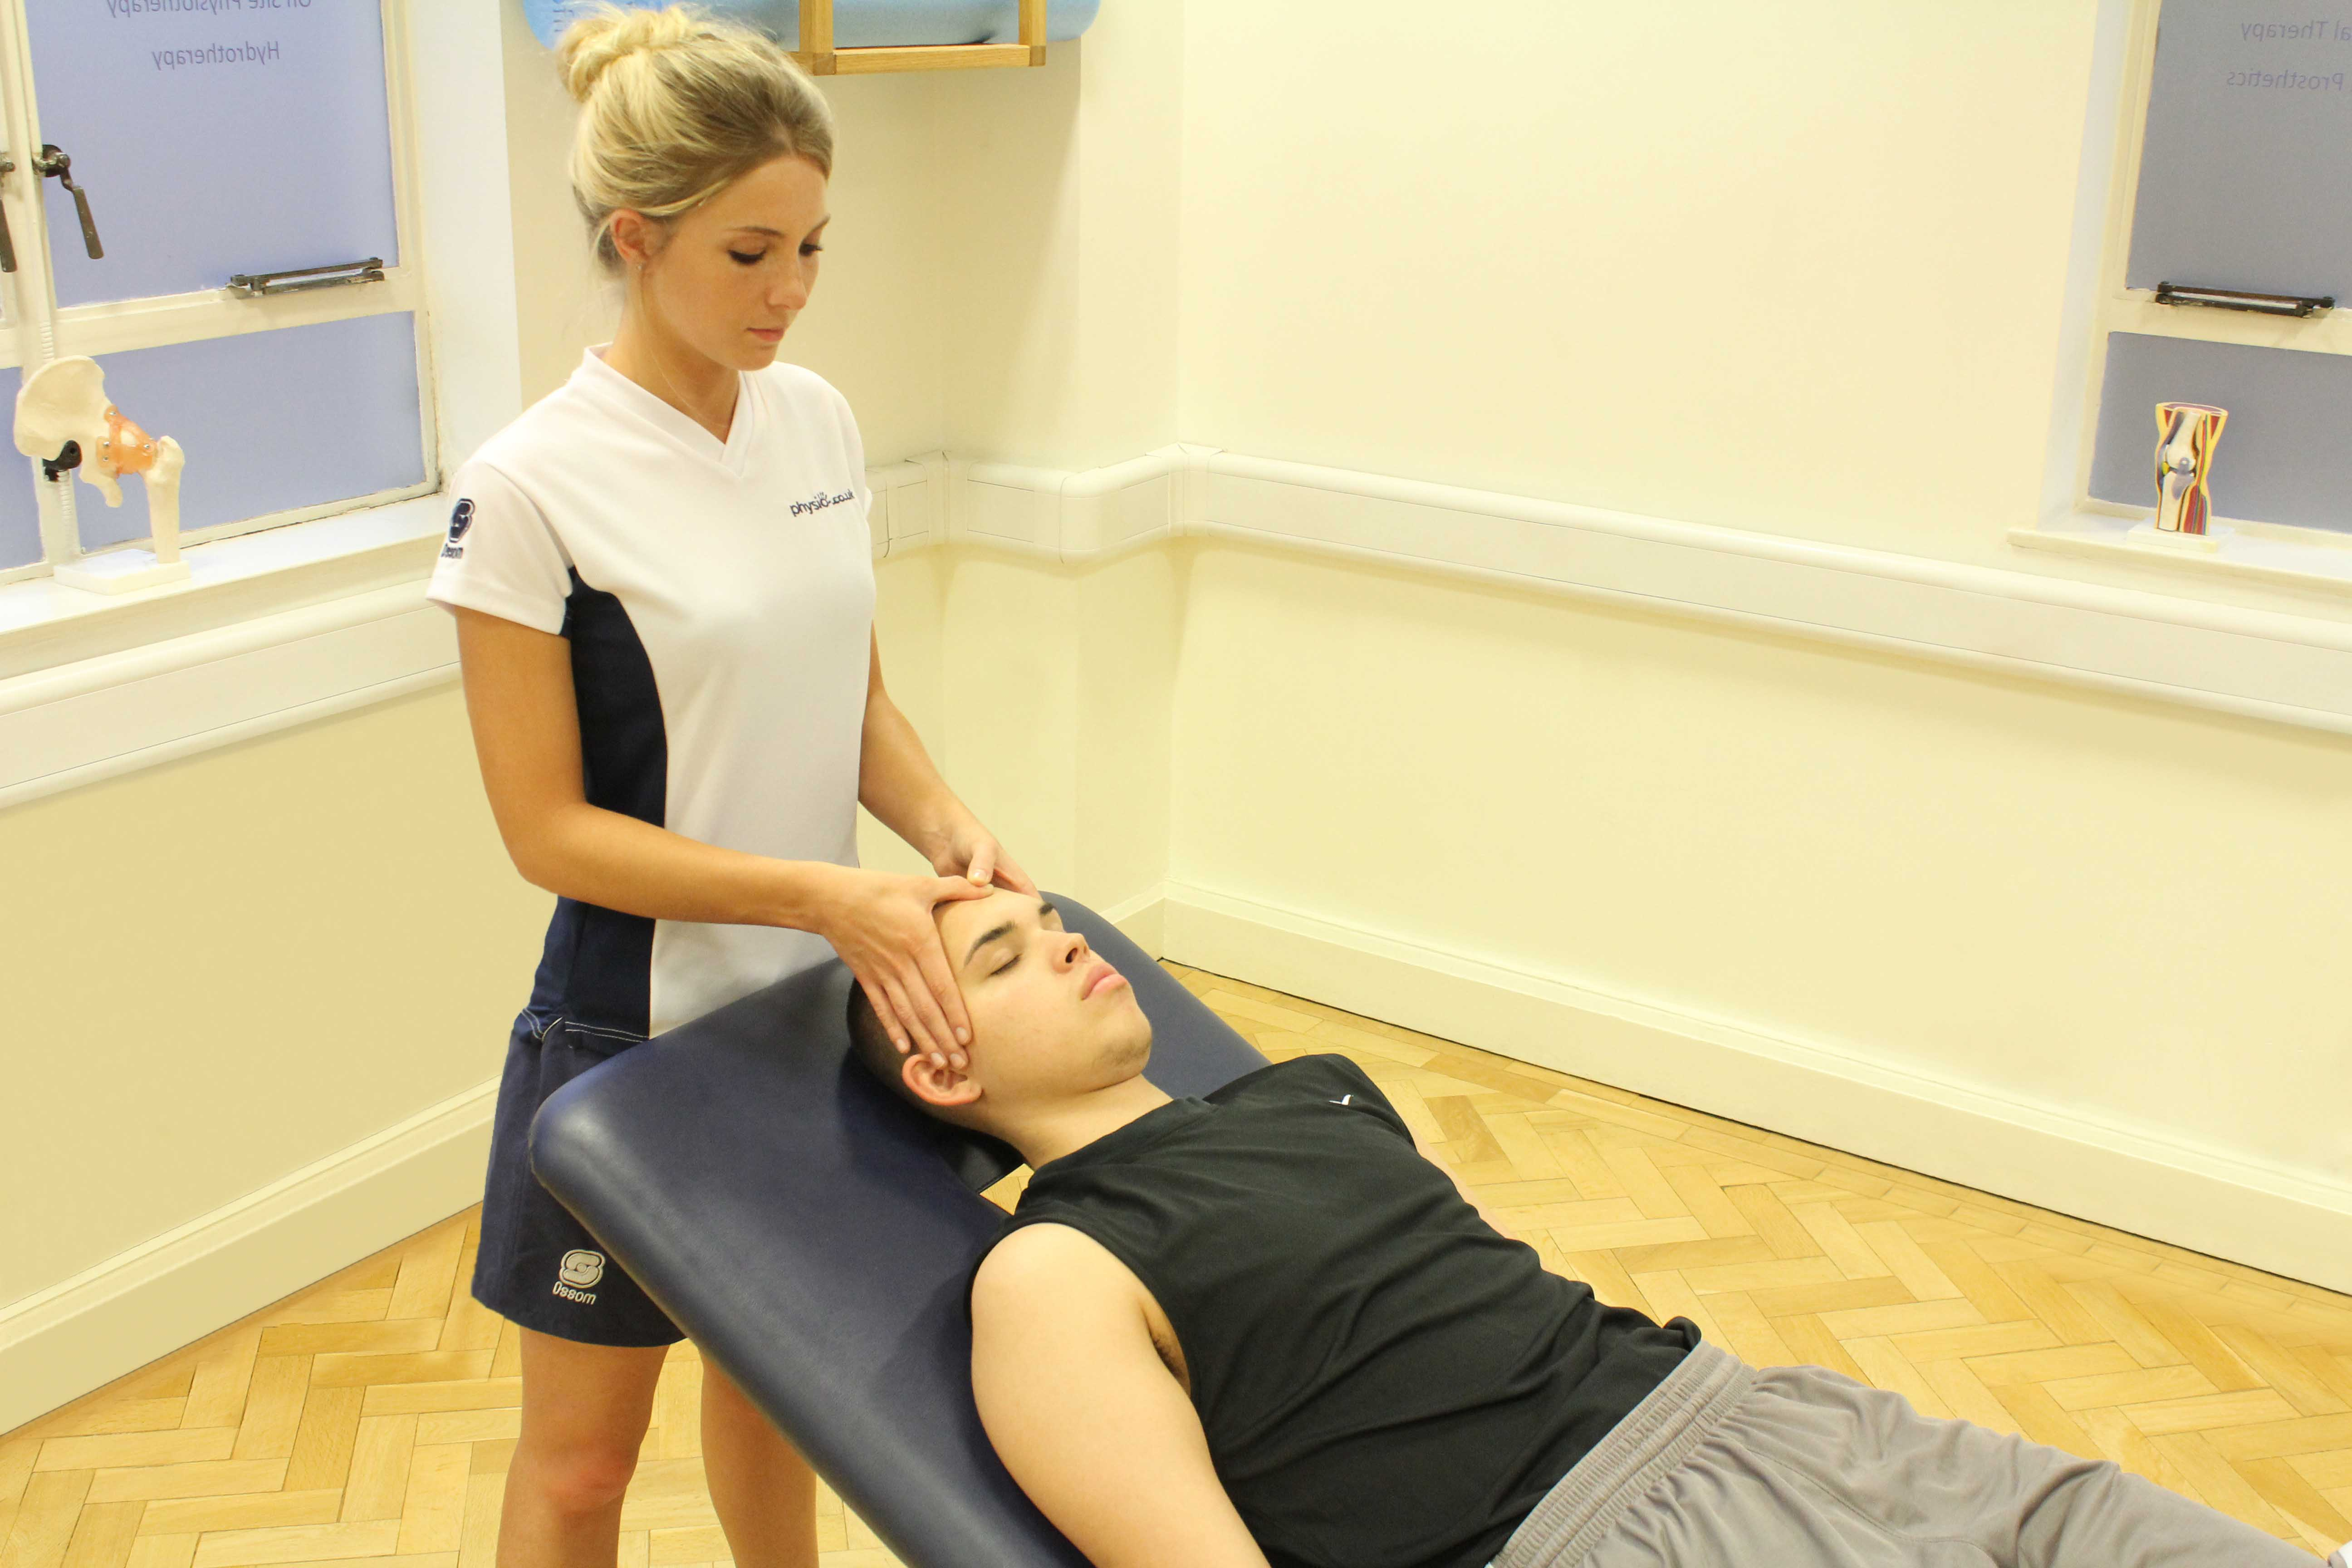 Cranial and neck soft tissue massage to relieve tension and promte relaxation, elevating endorphins.